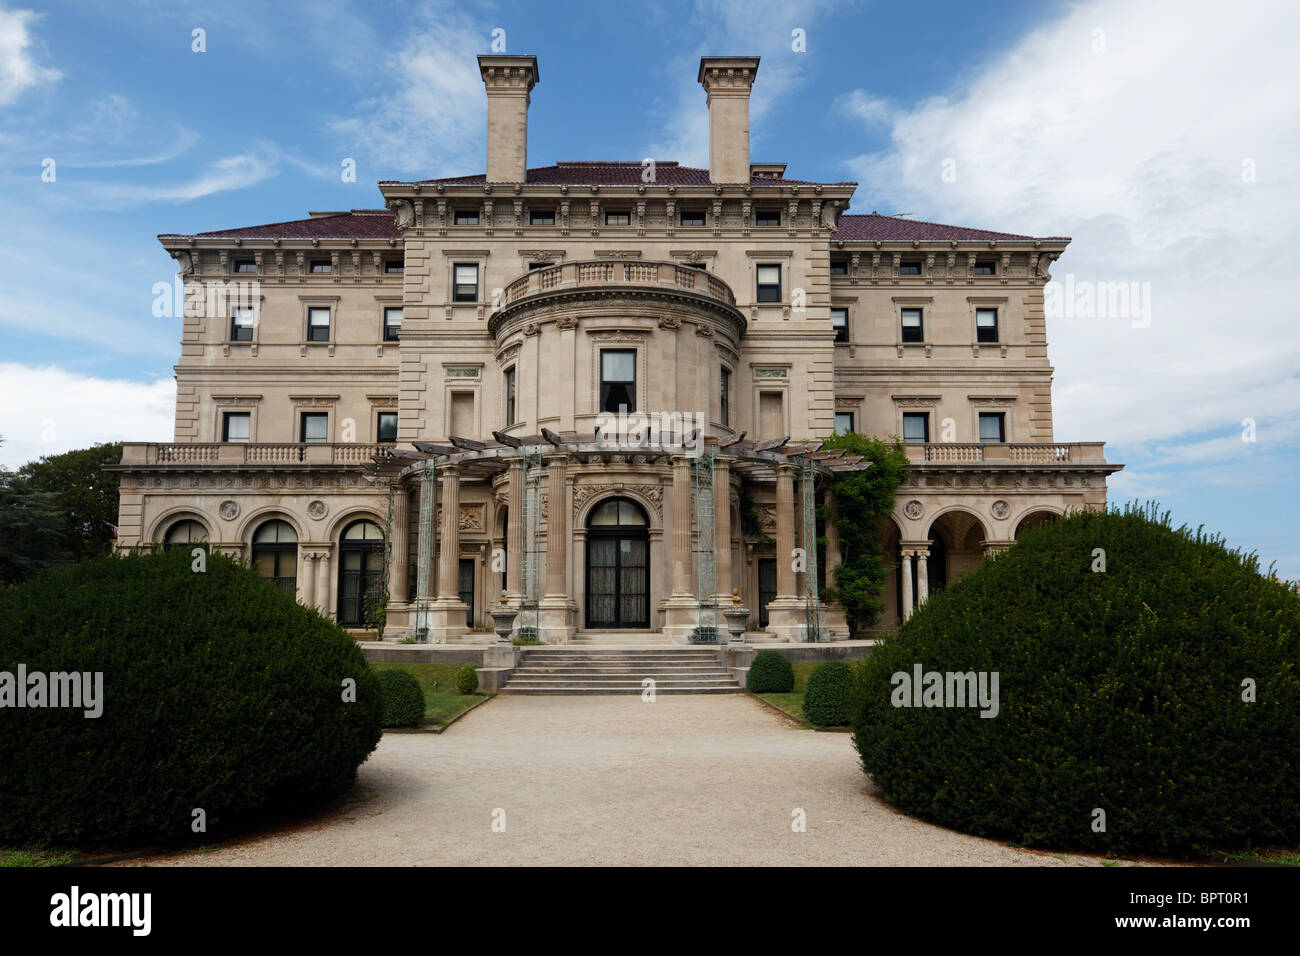 View of The Breakers Mansion from the side, Rhode Island - Stock Image